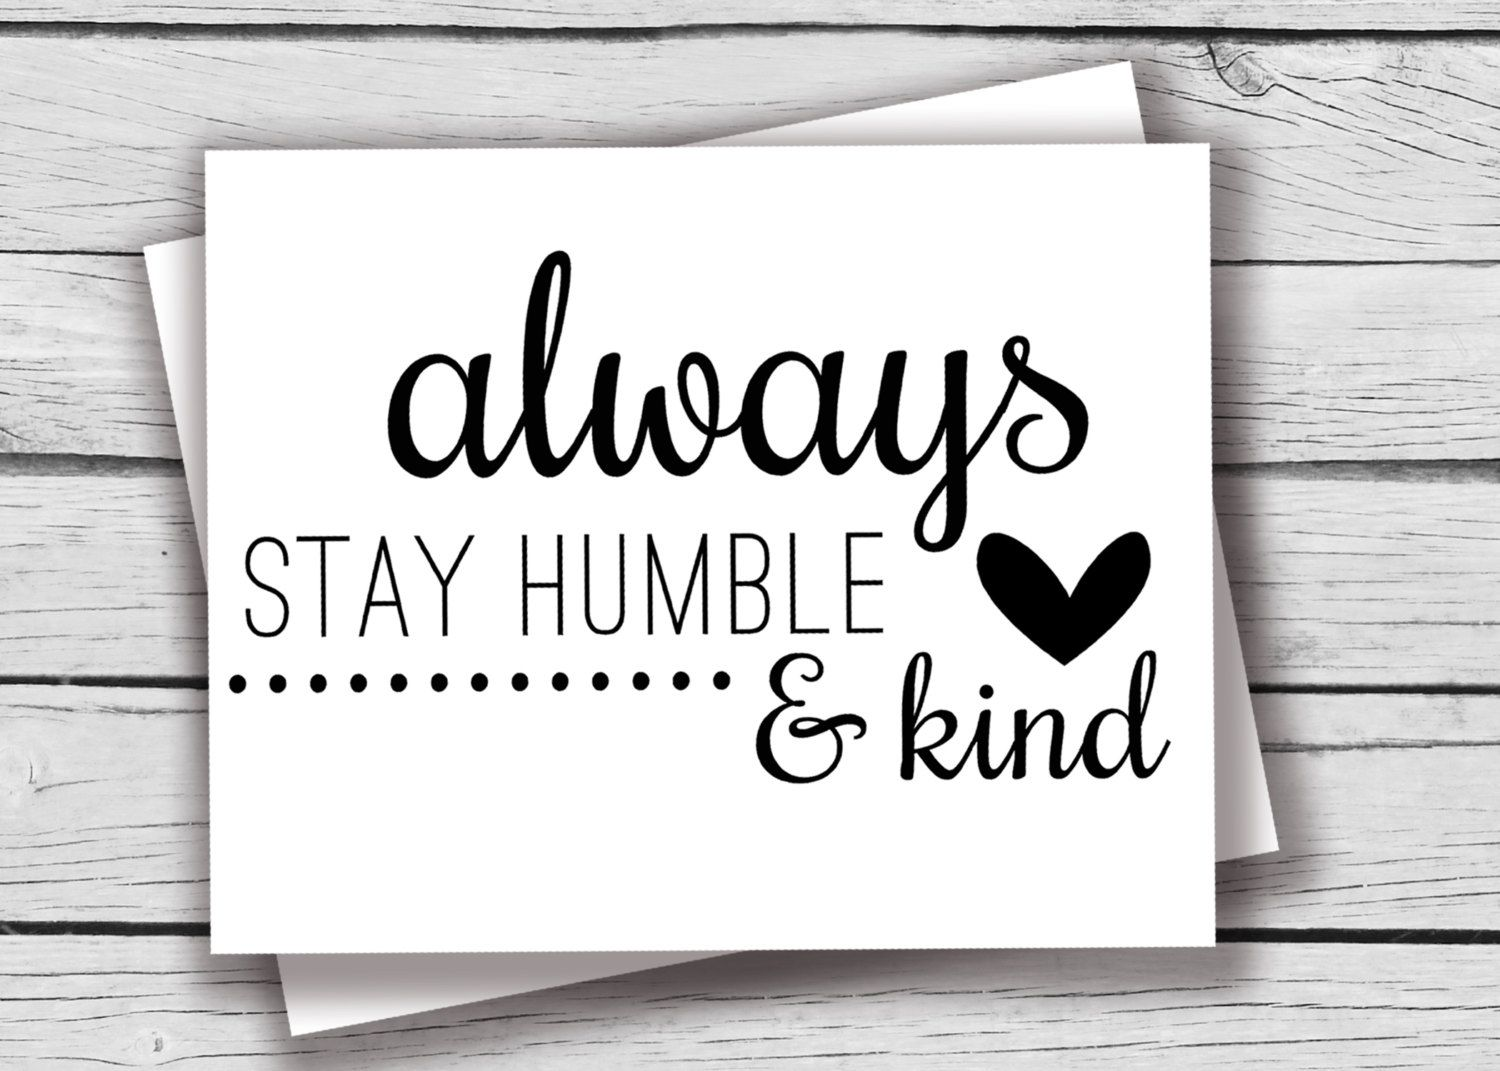 Tim Mcgraw Humble And Kind Google Search Stay Humble Tim Mcgraw Songs Humble